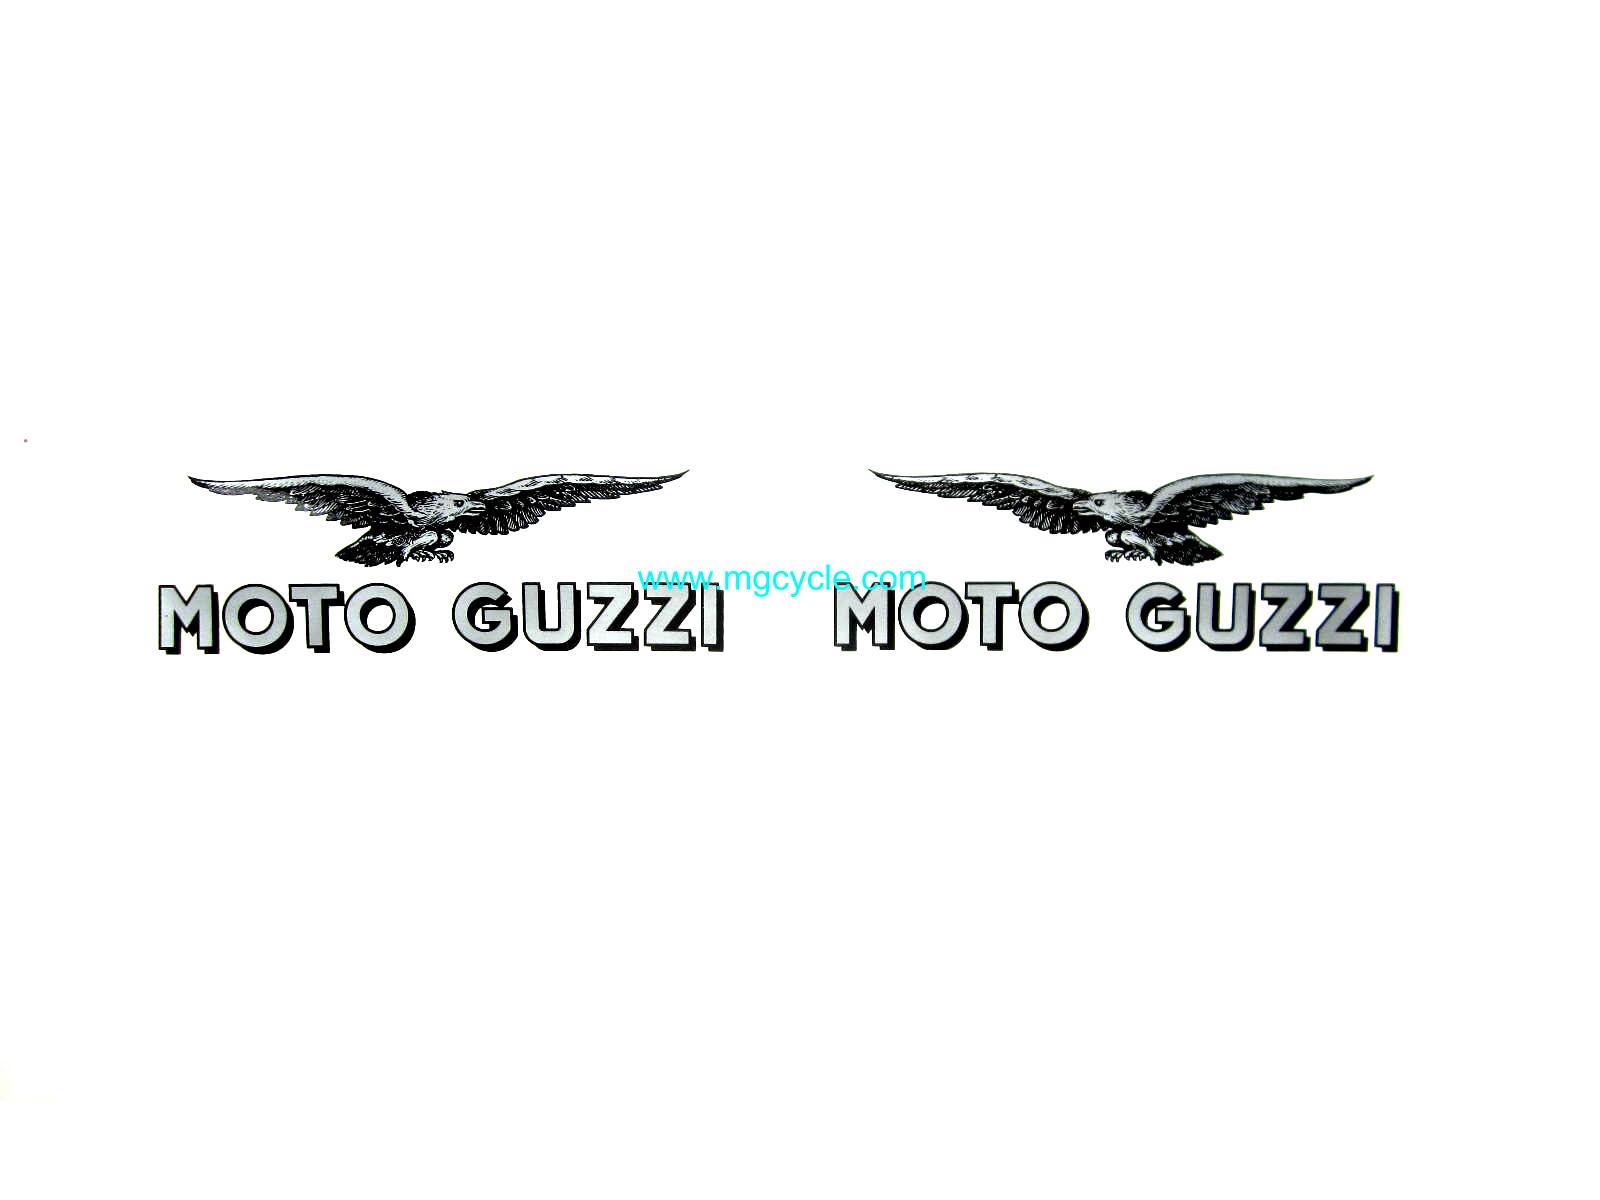 decal transfer : MG Cycle, Moto Guzzi Parts and